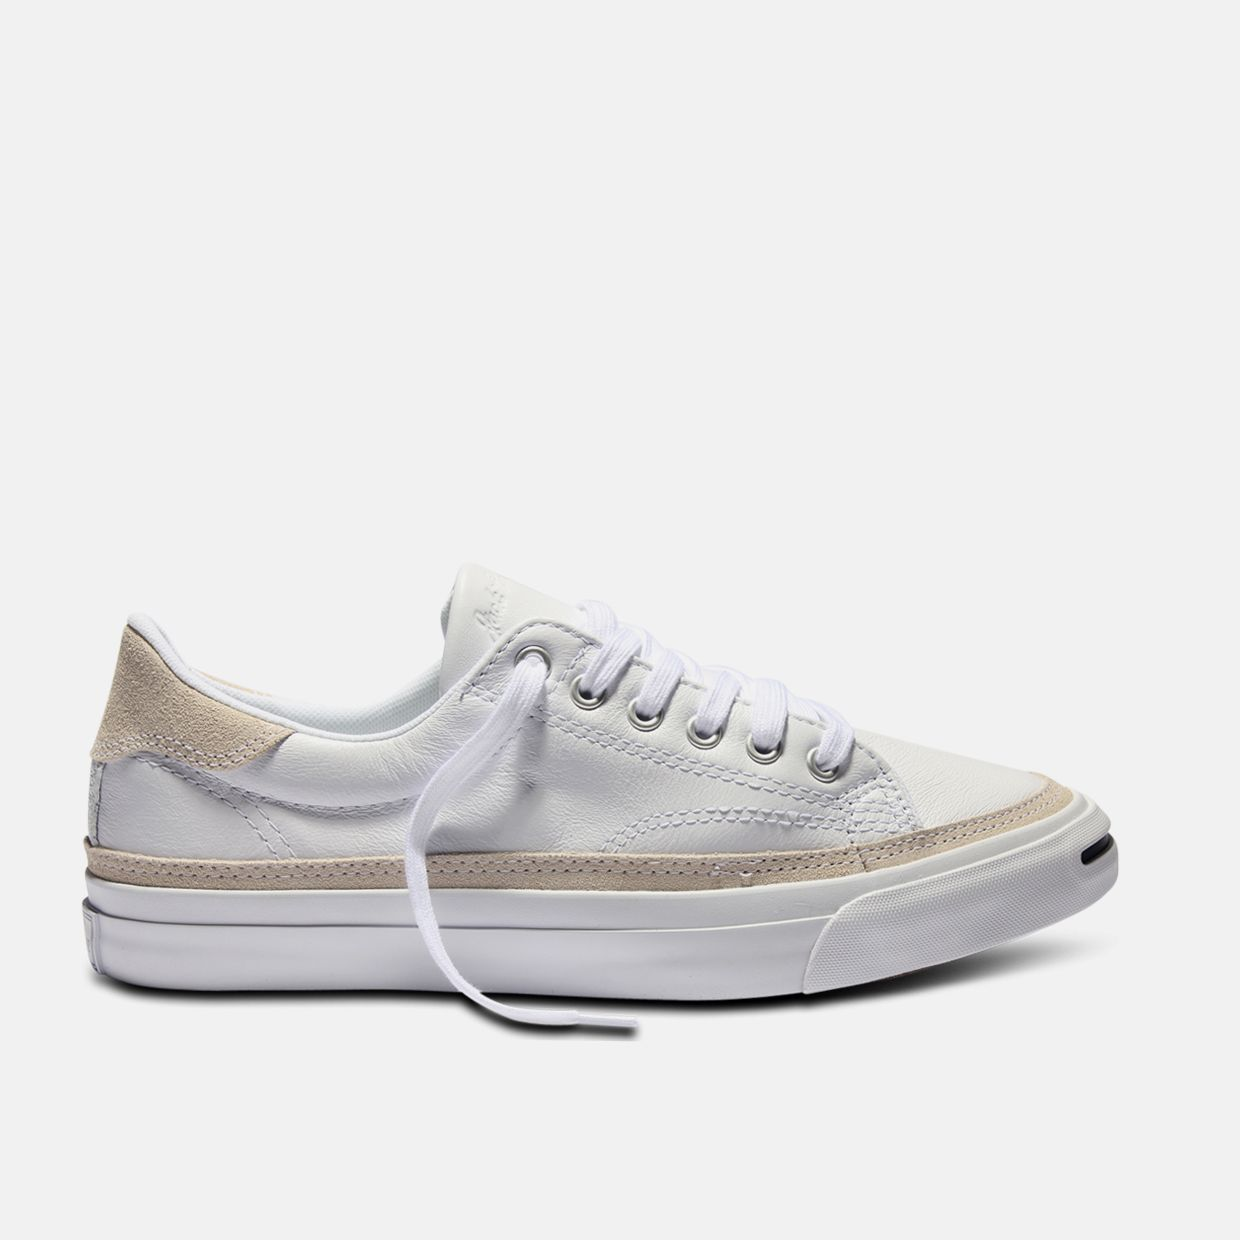 new style 2660b 2aec1 usa nike lunarepic low flyknit sneaker nordstrom rack 03f63 1b08e   australia converse jack purcell 57164 5844e